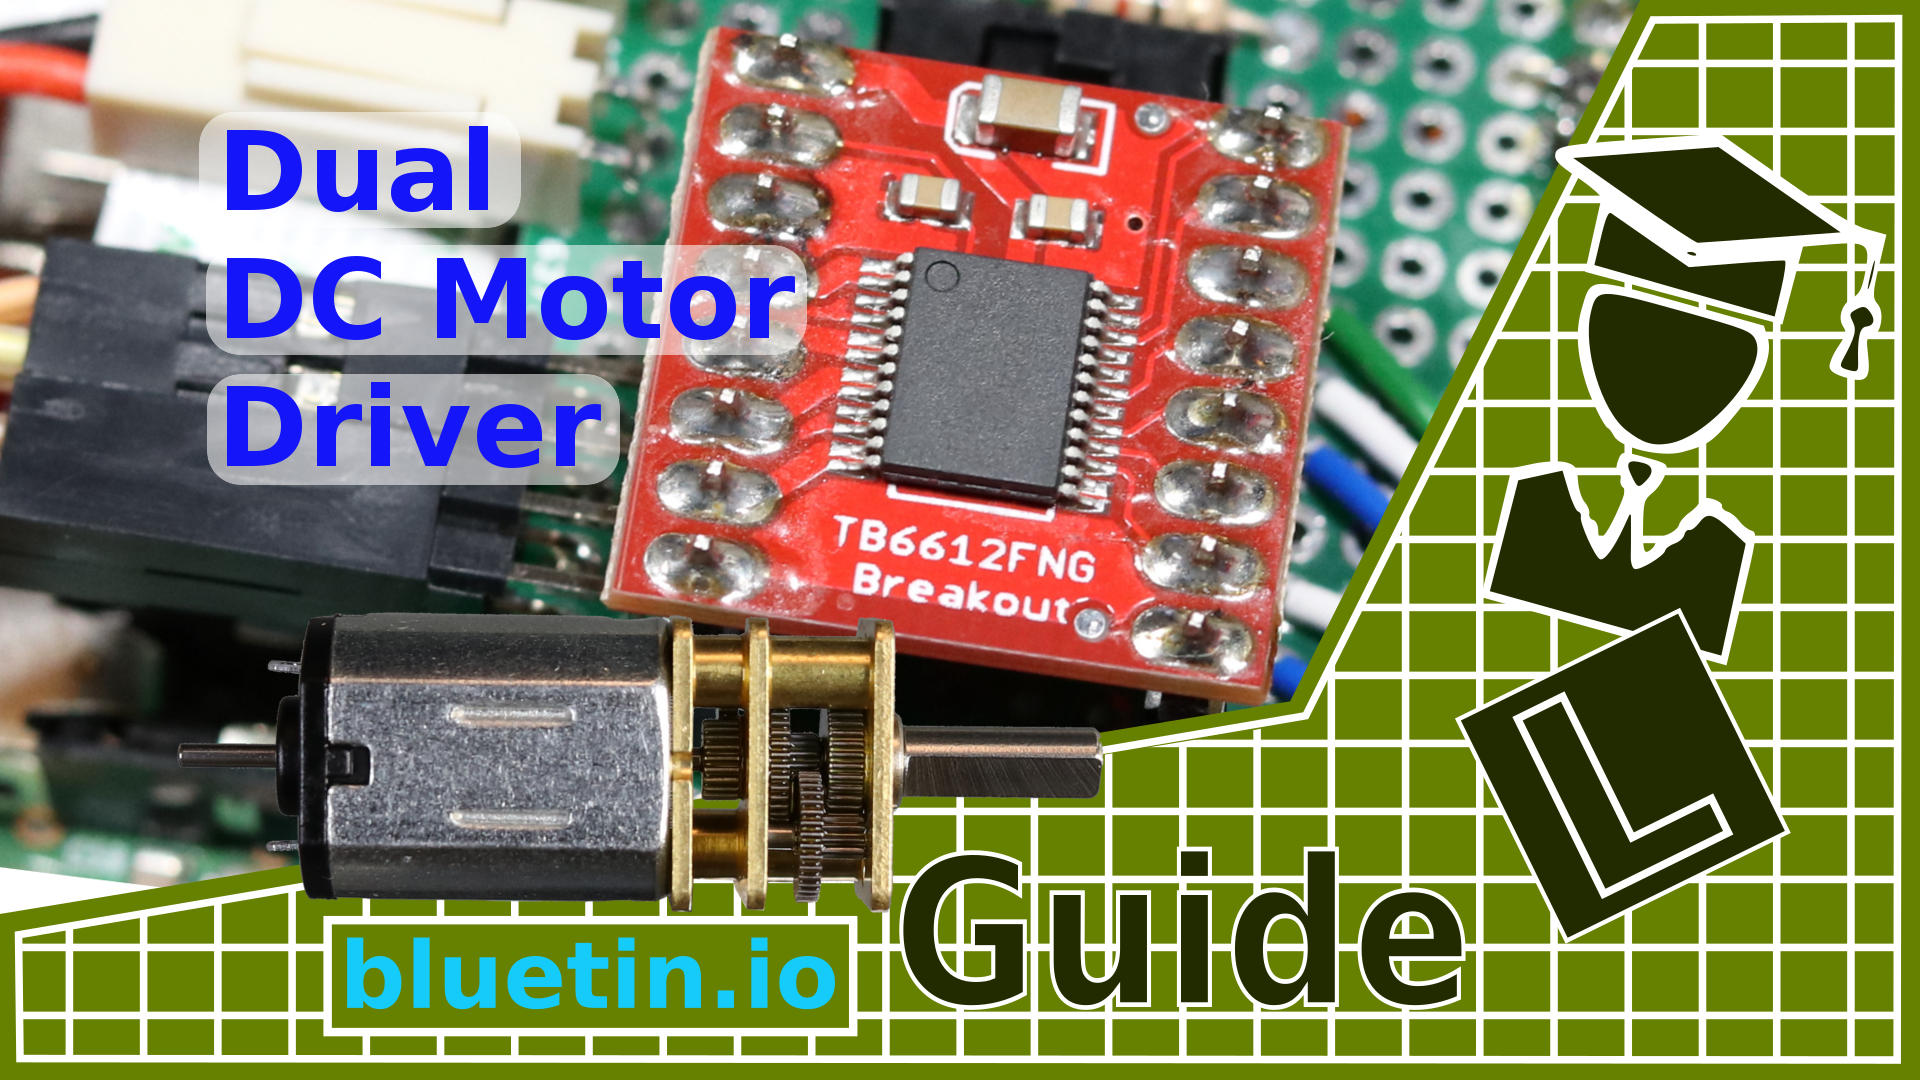 Tb6612fng dual dc motor driver and arduino circuit guide for Dc motor driver ic